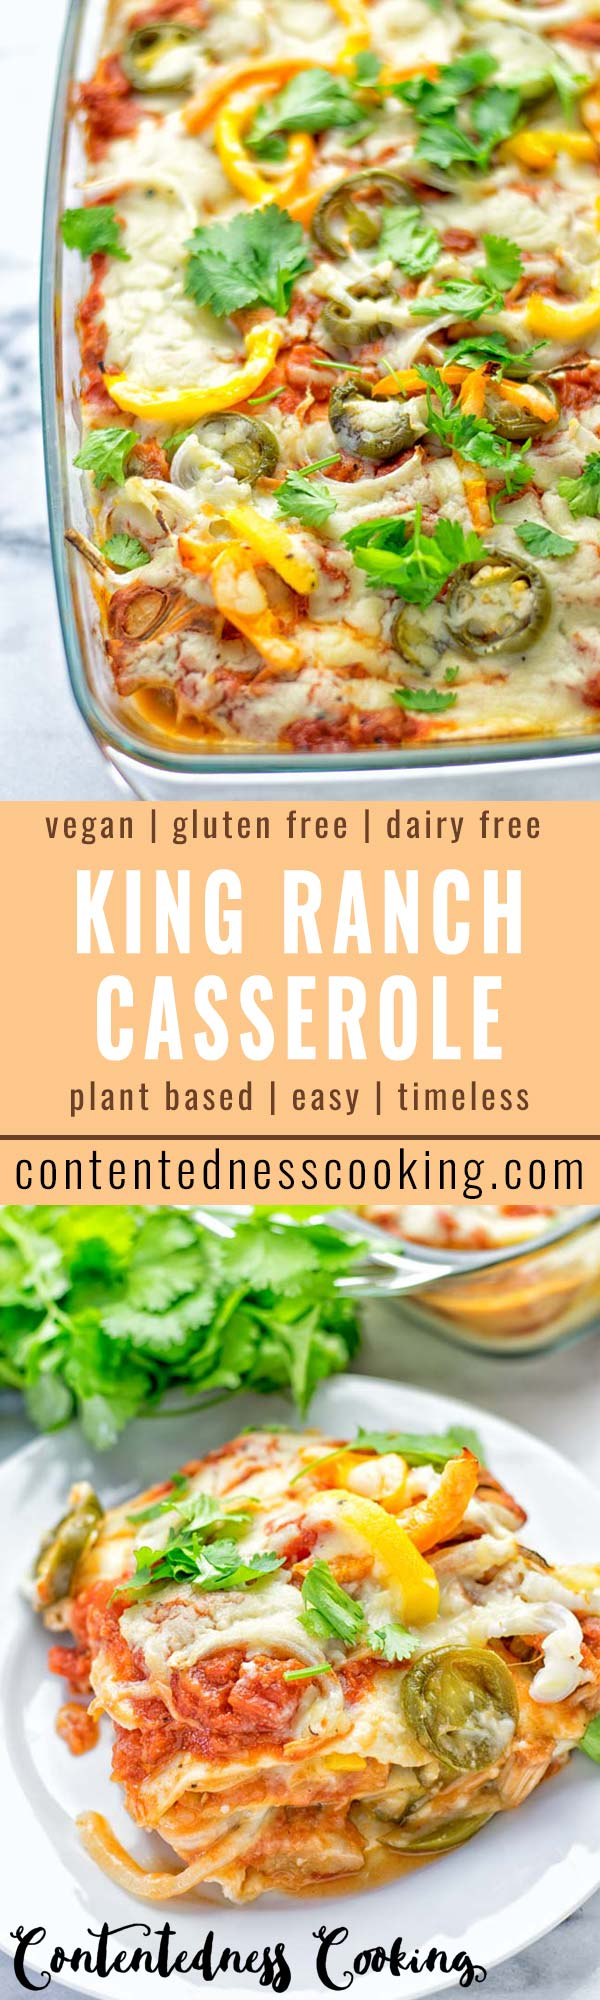 King Ranch Casserole | #vegan #plantbased #dairyfree #contentednesscooking